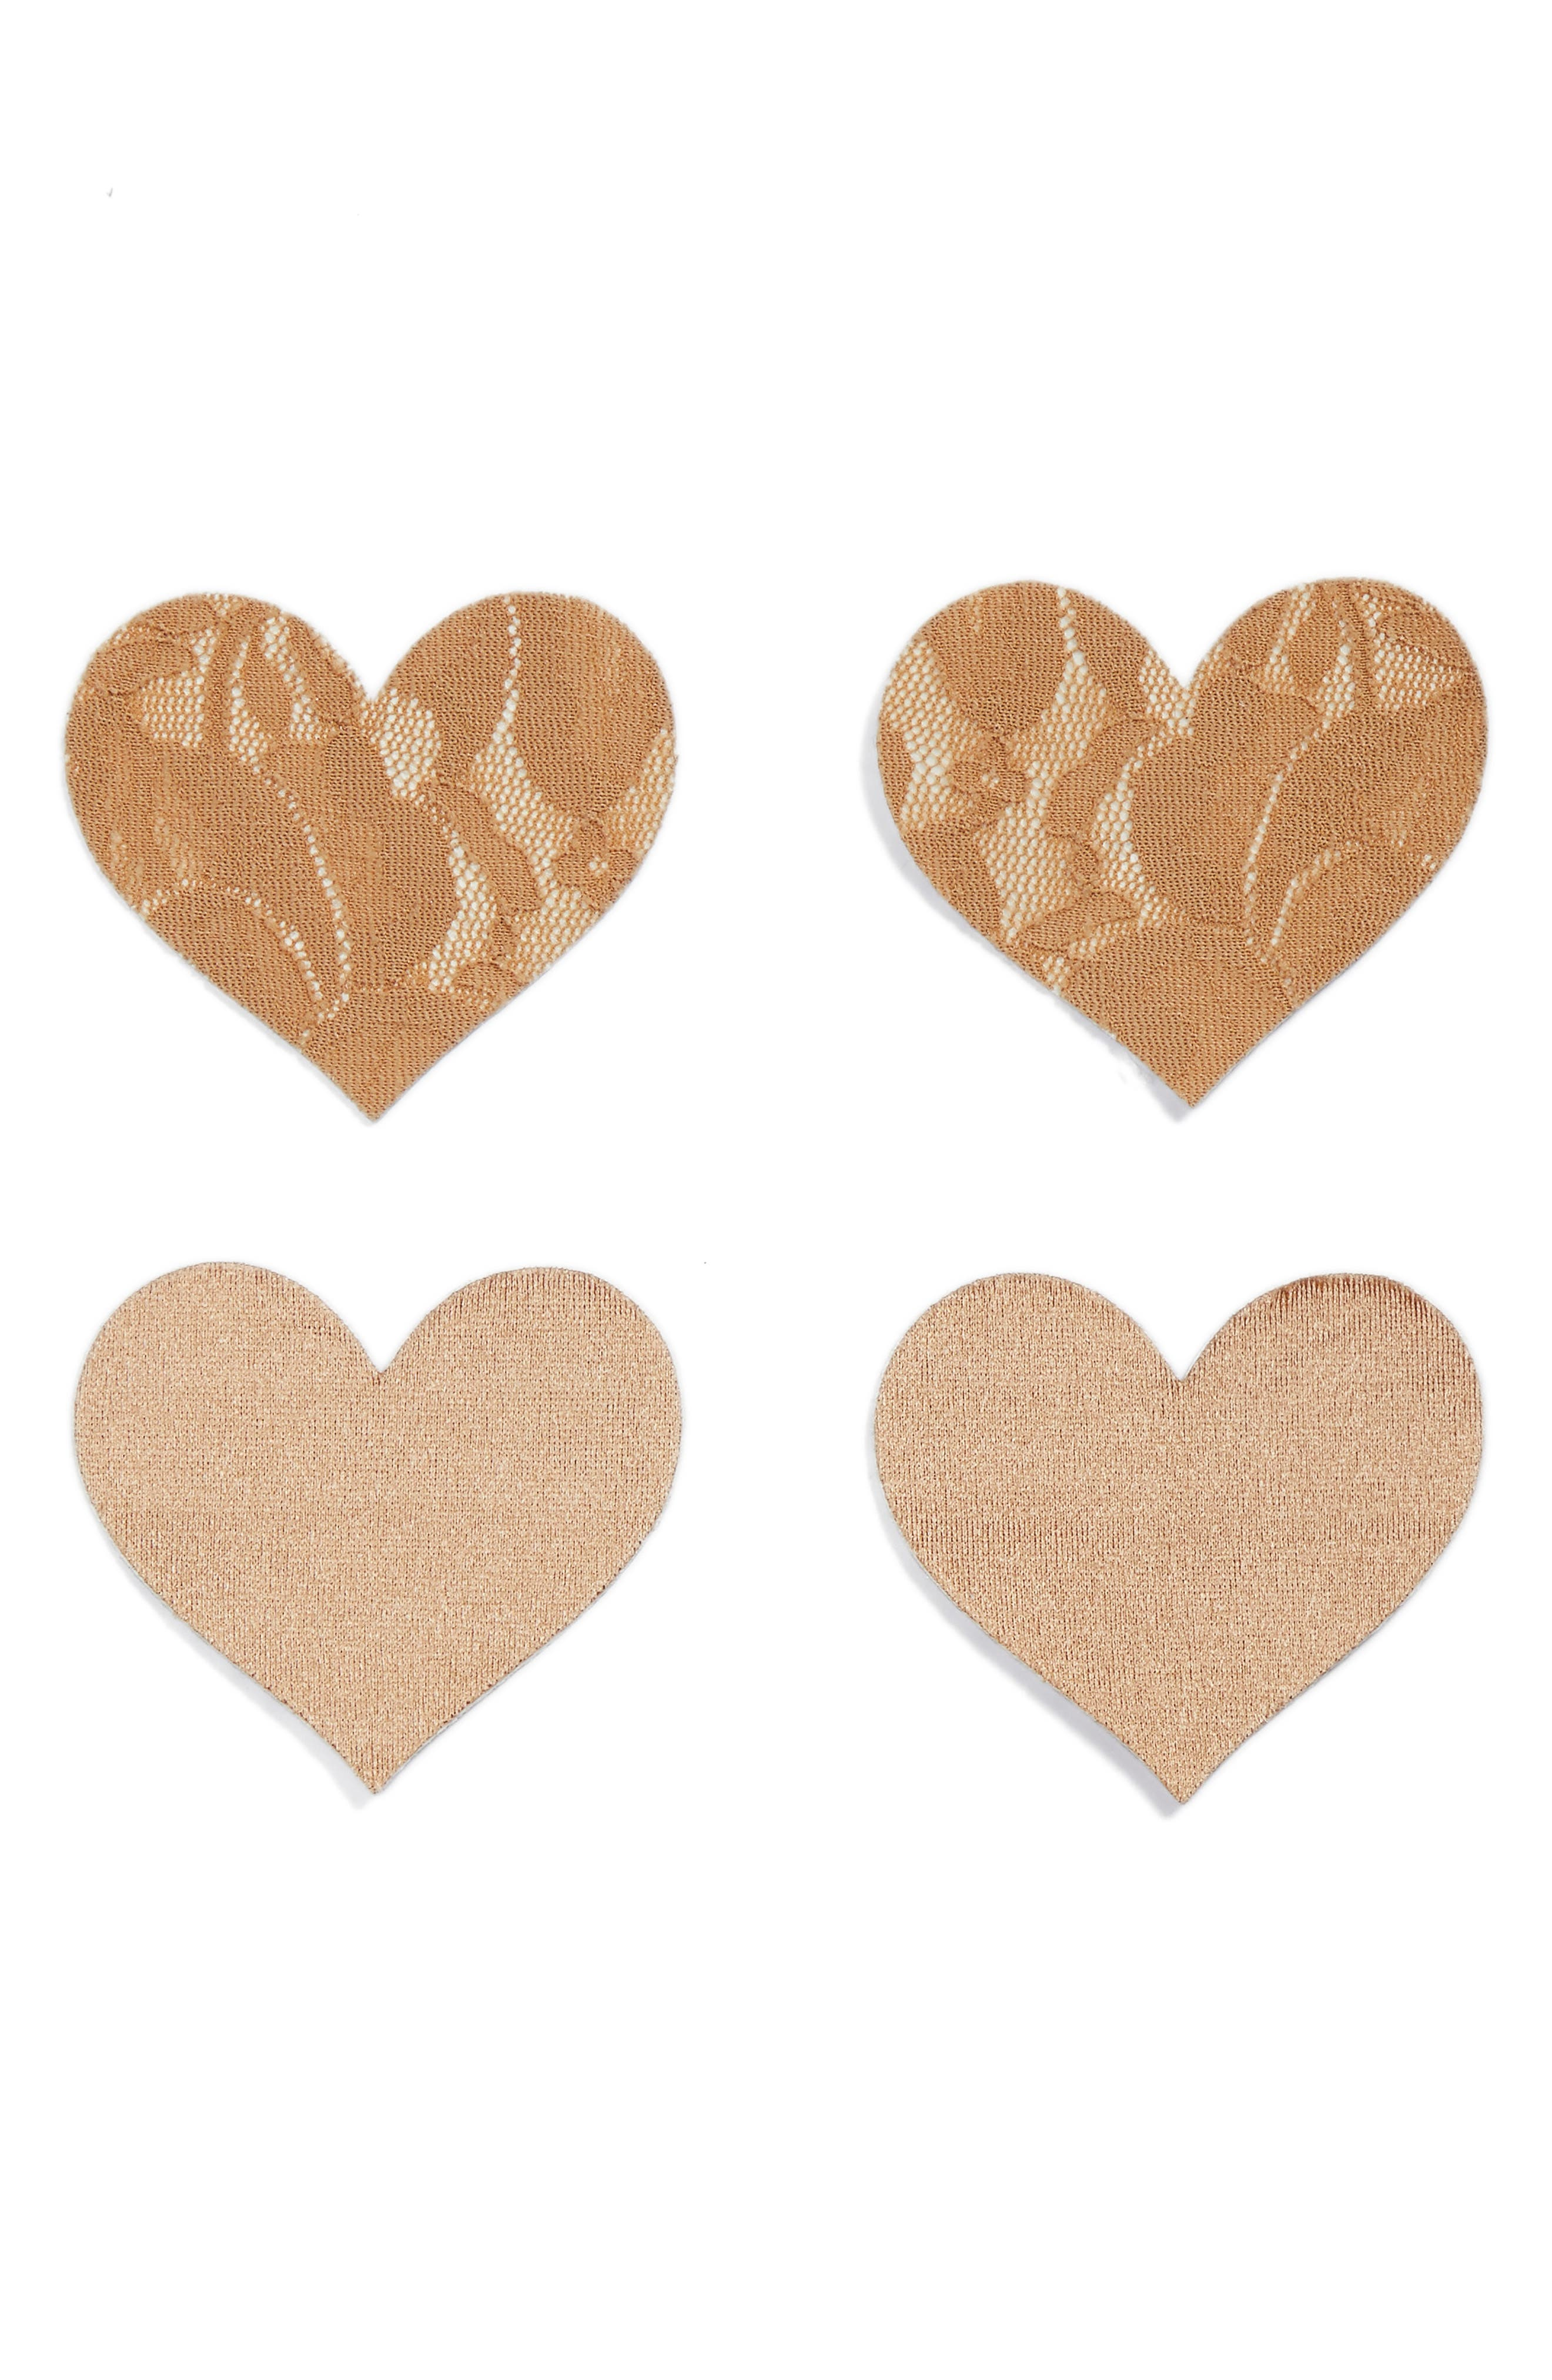 Nippies by Bristols Six Heart Nipple Covers,                         Main,                         color, Carmel